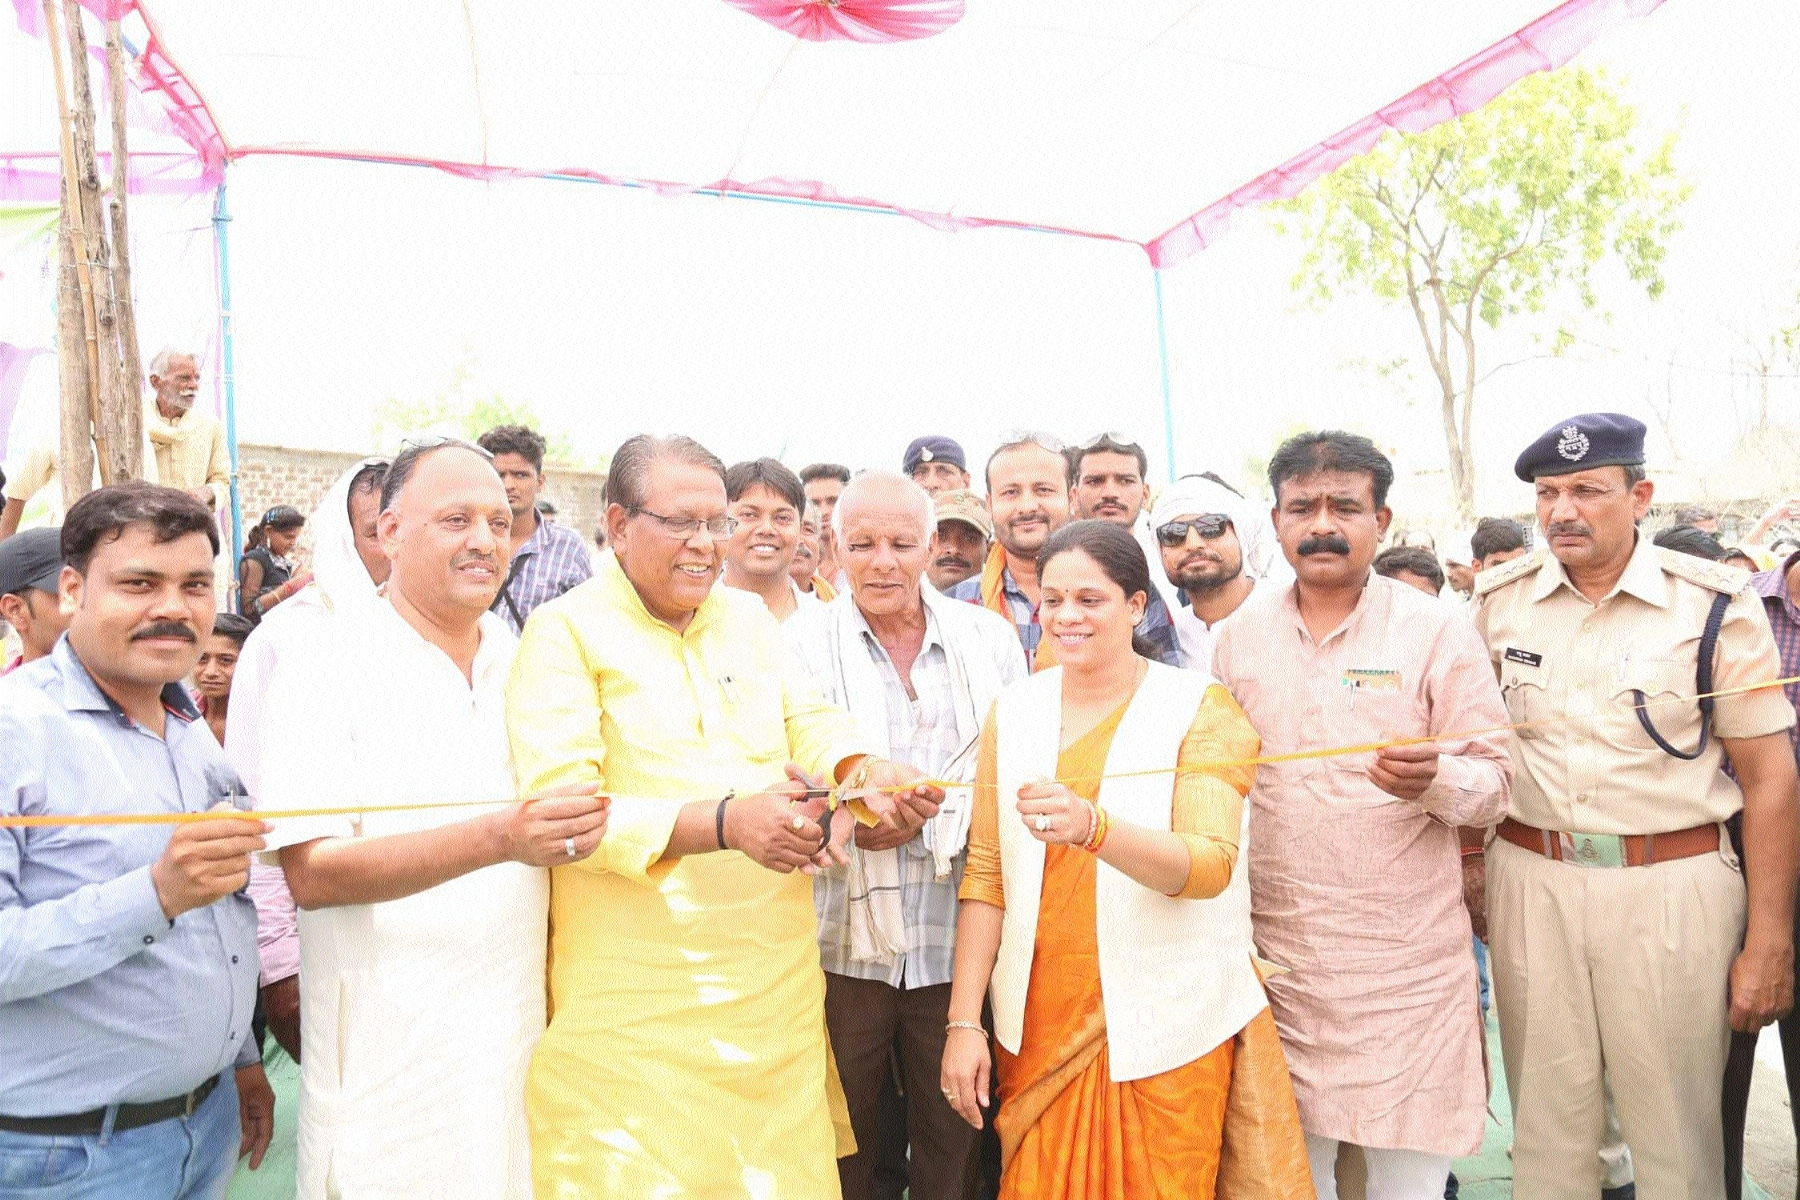 Minister Gupta lays stone for devpt works in Surkhi segment